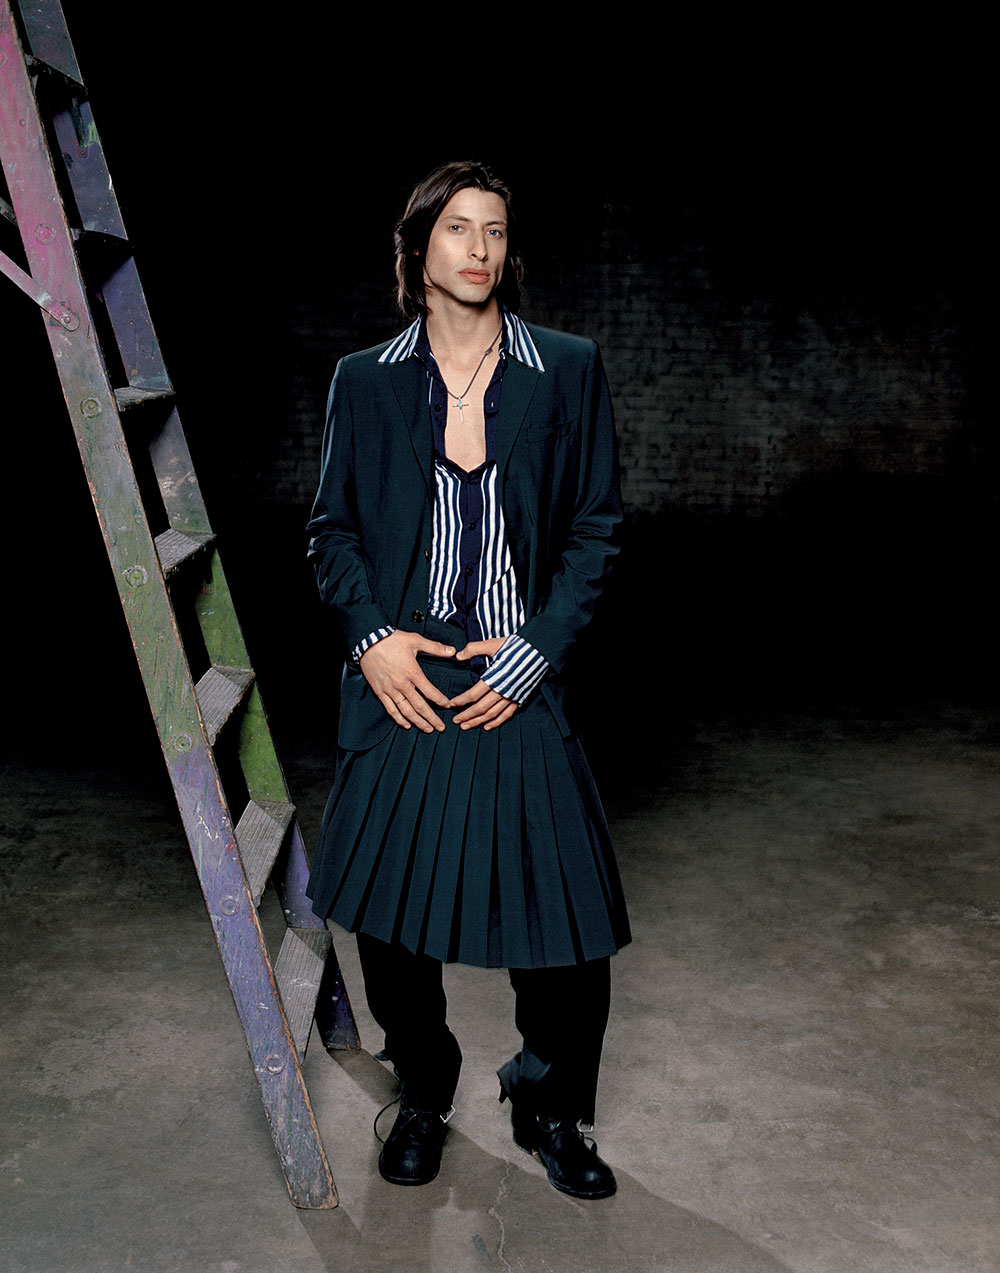 Men-Of-Fashion_45967_8AS.jpg